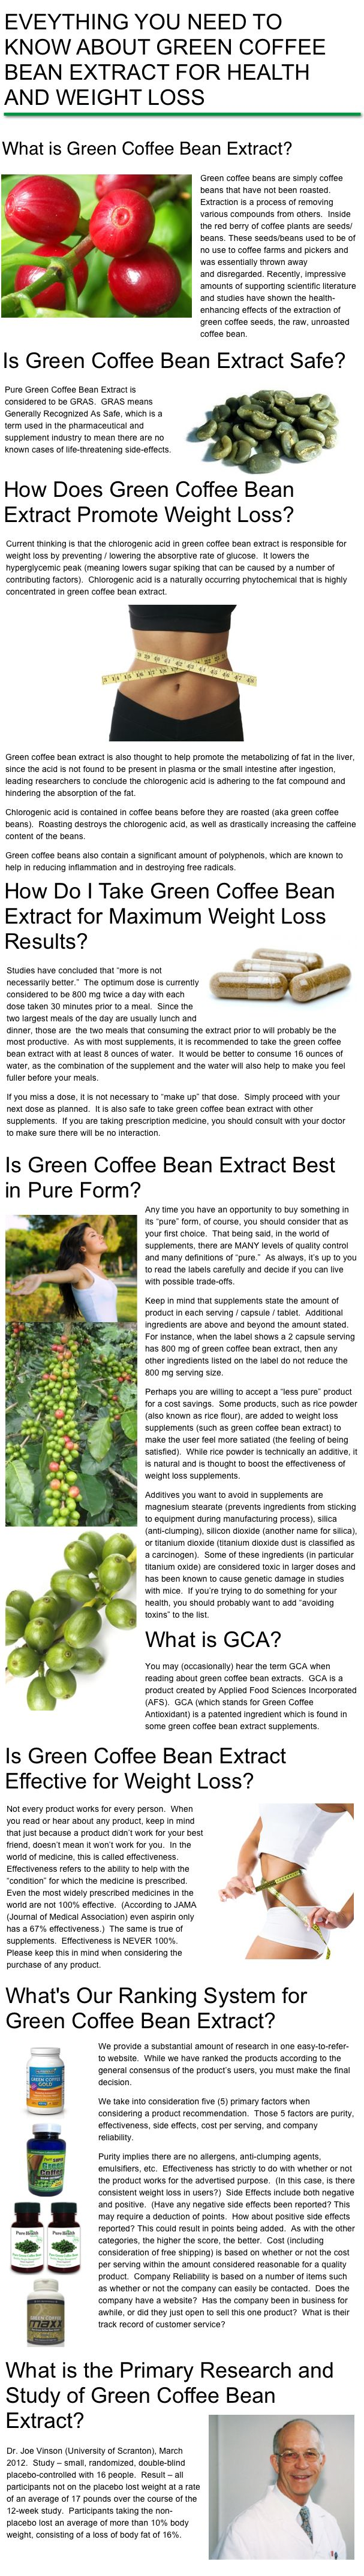 Everything you need to know about Green Coffee Bean Extract for health and weight loss http://www.buyhealthmart.com/weight-loss/green-coffee-bean-max/